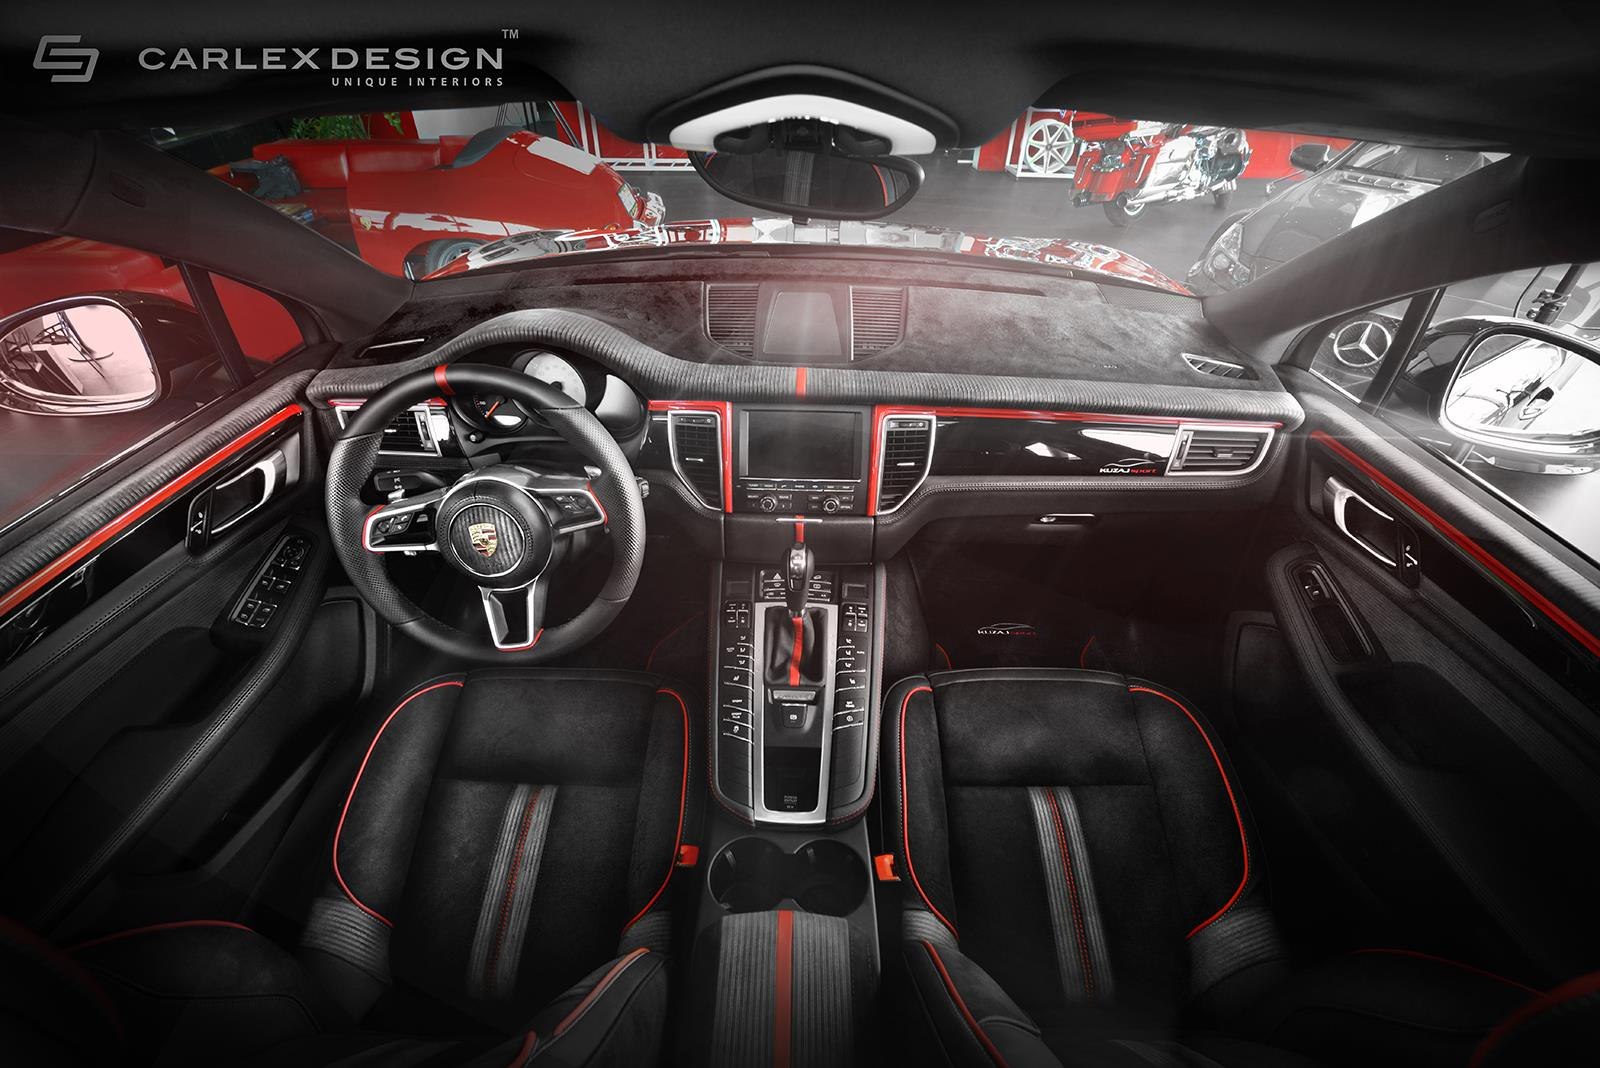 porsche macan gets a berserk red and black interior makeover from carlex design autoevolution. Black Bedroom Furniture Sets. Home Design Ideas